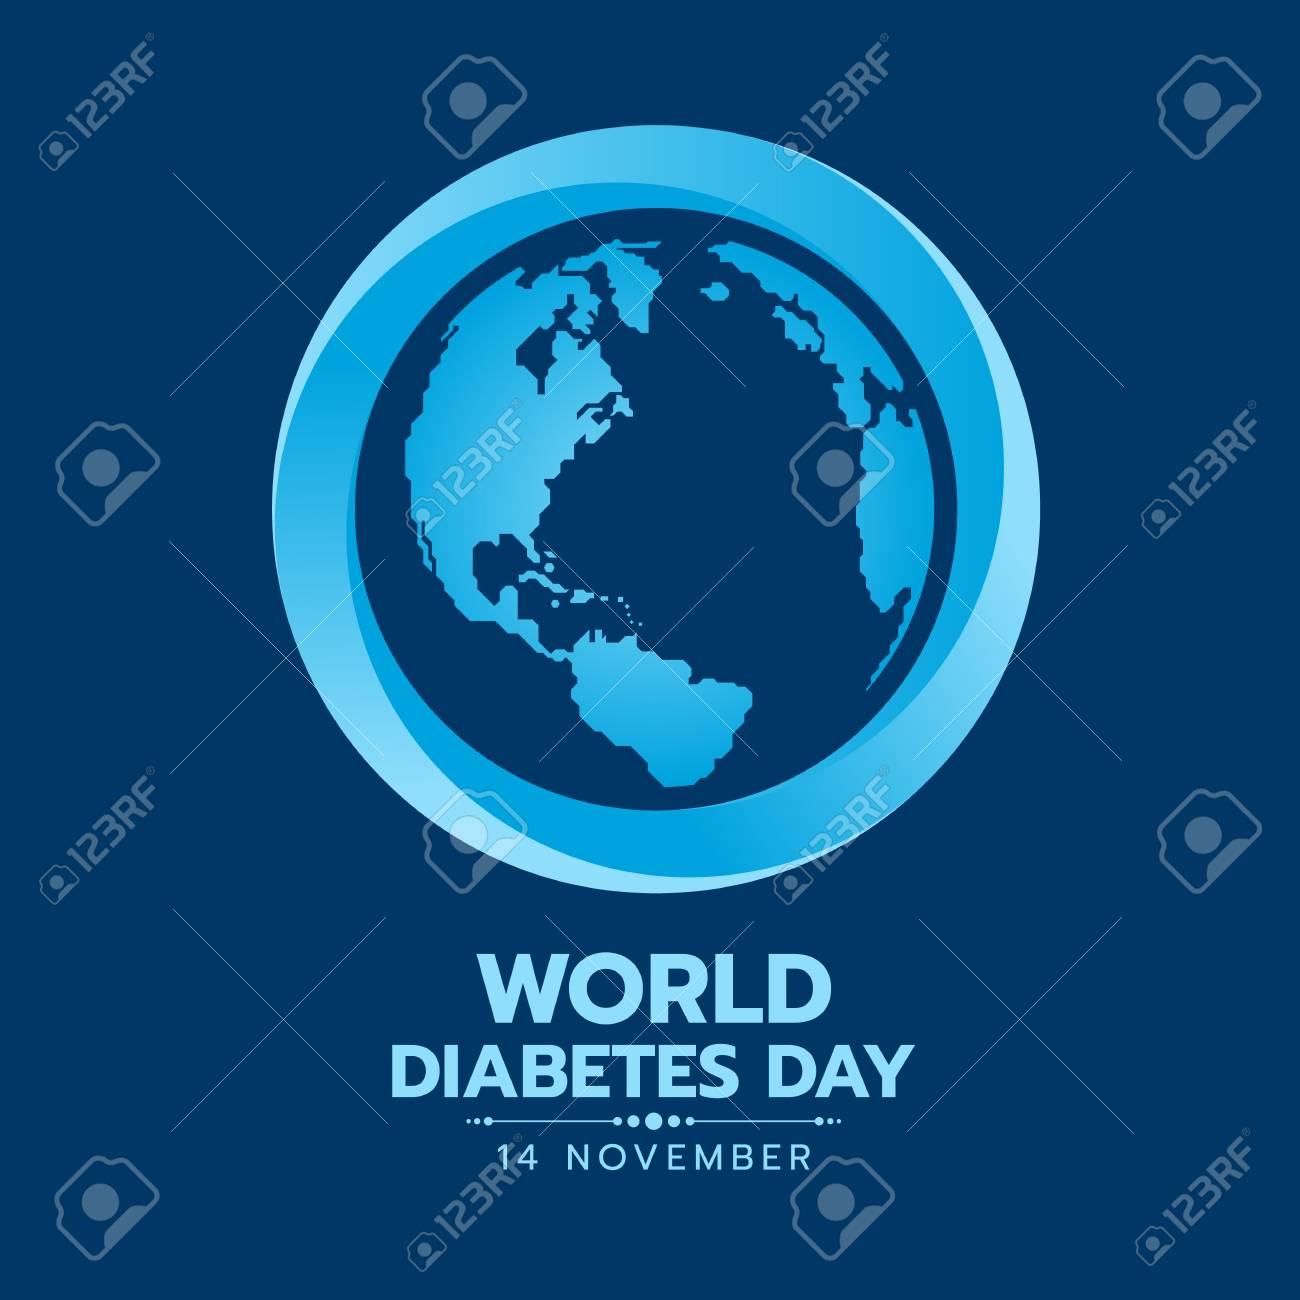 World Diabetes Day Banner With Earth World Map Sign In Blue Circle